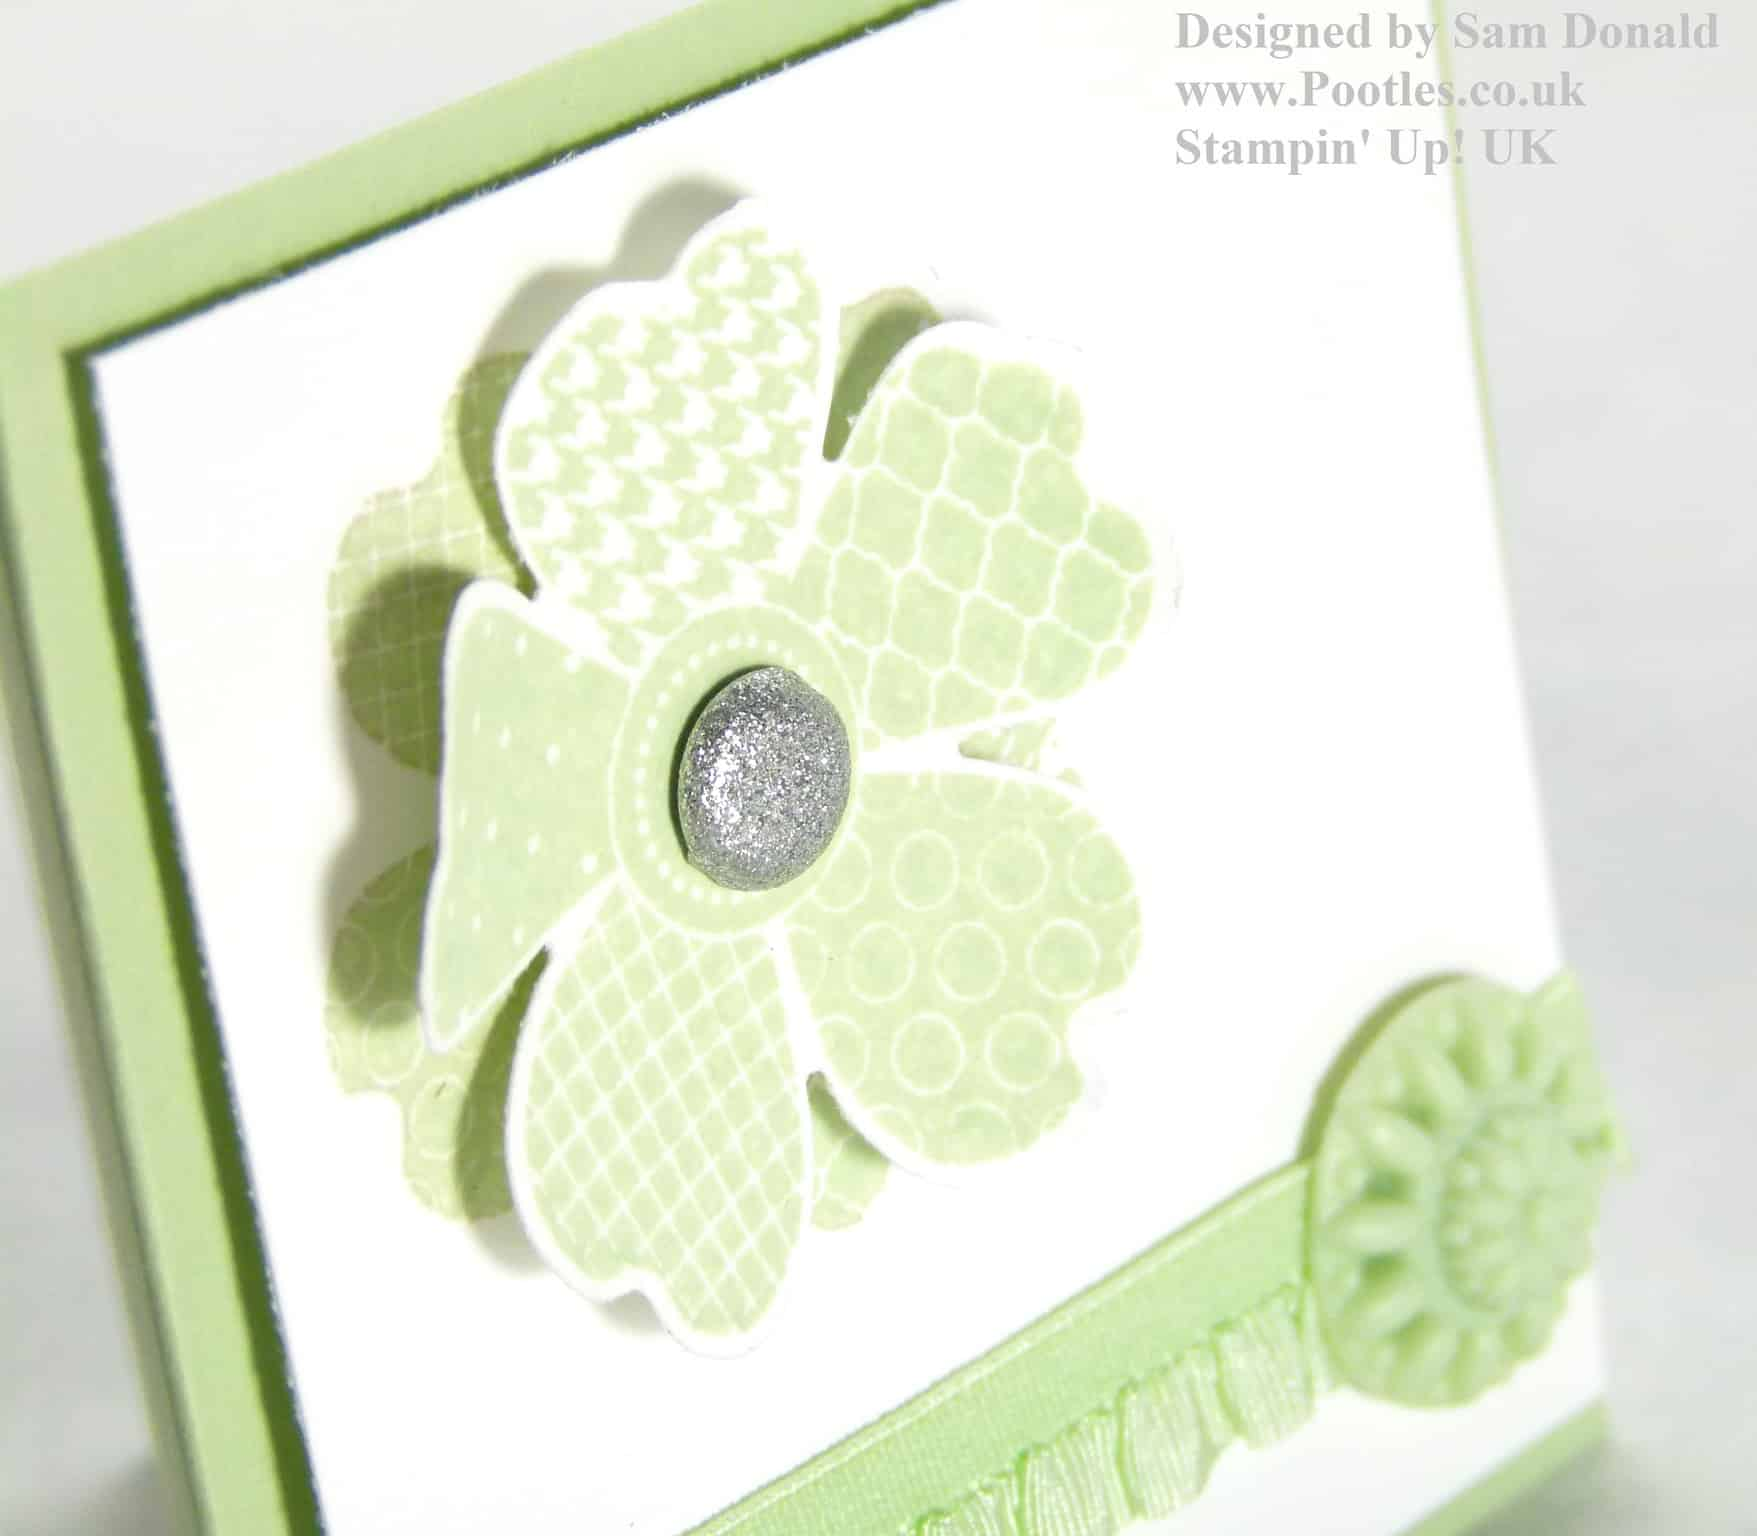 Pootles Stampin Up UK Pansy Punch Flower Shop In Colours 2